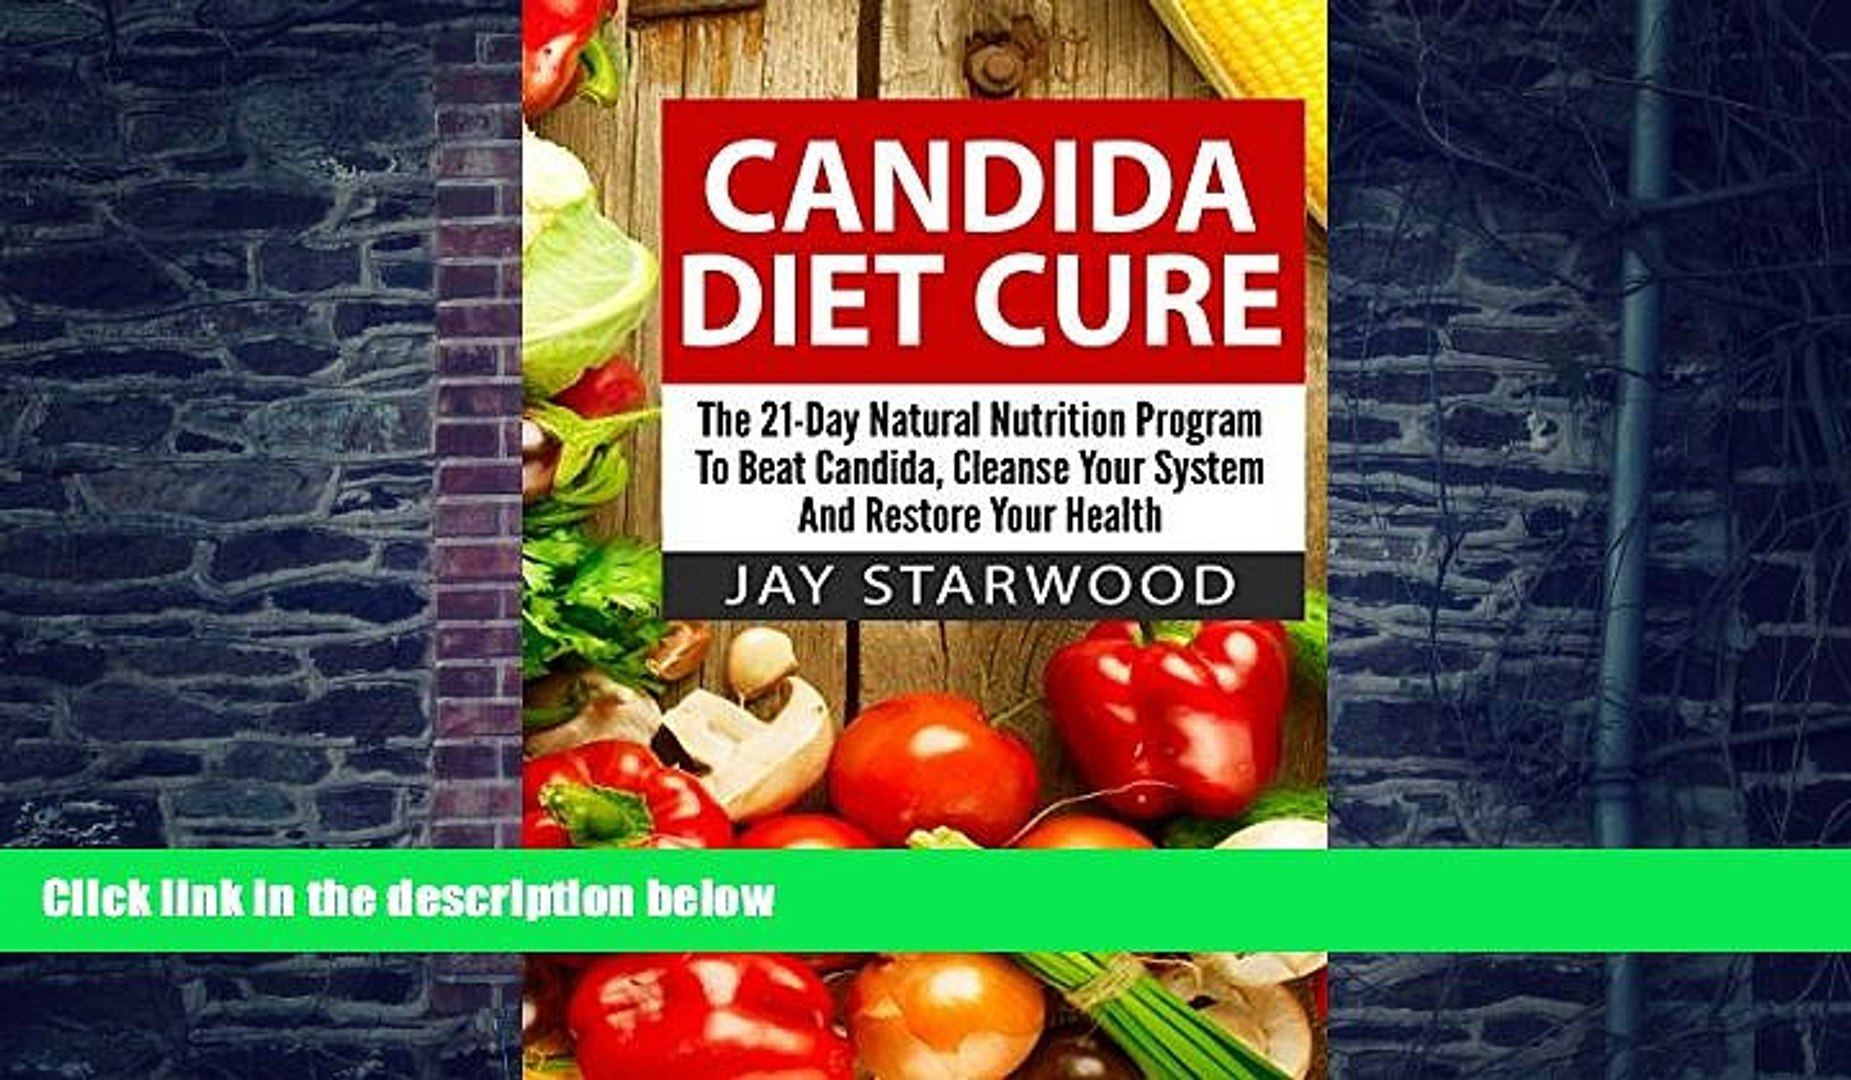 Big Deals Candida Diet Cure: The 21-Day Natural Nutrition Program To Beat  Candida, Cleanse Your